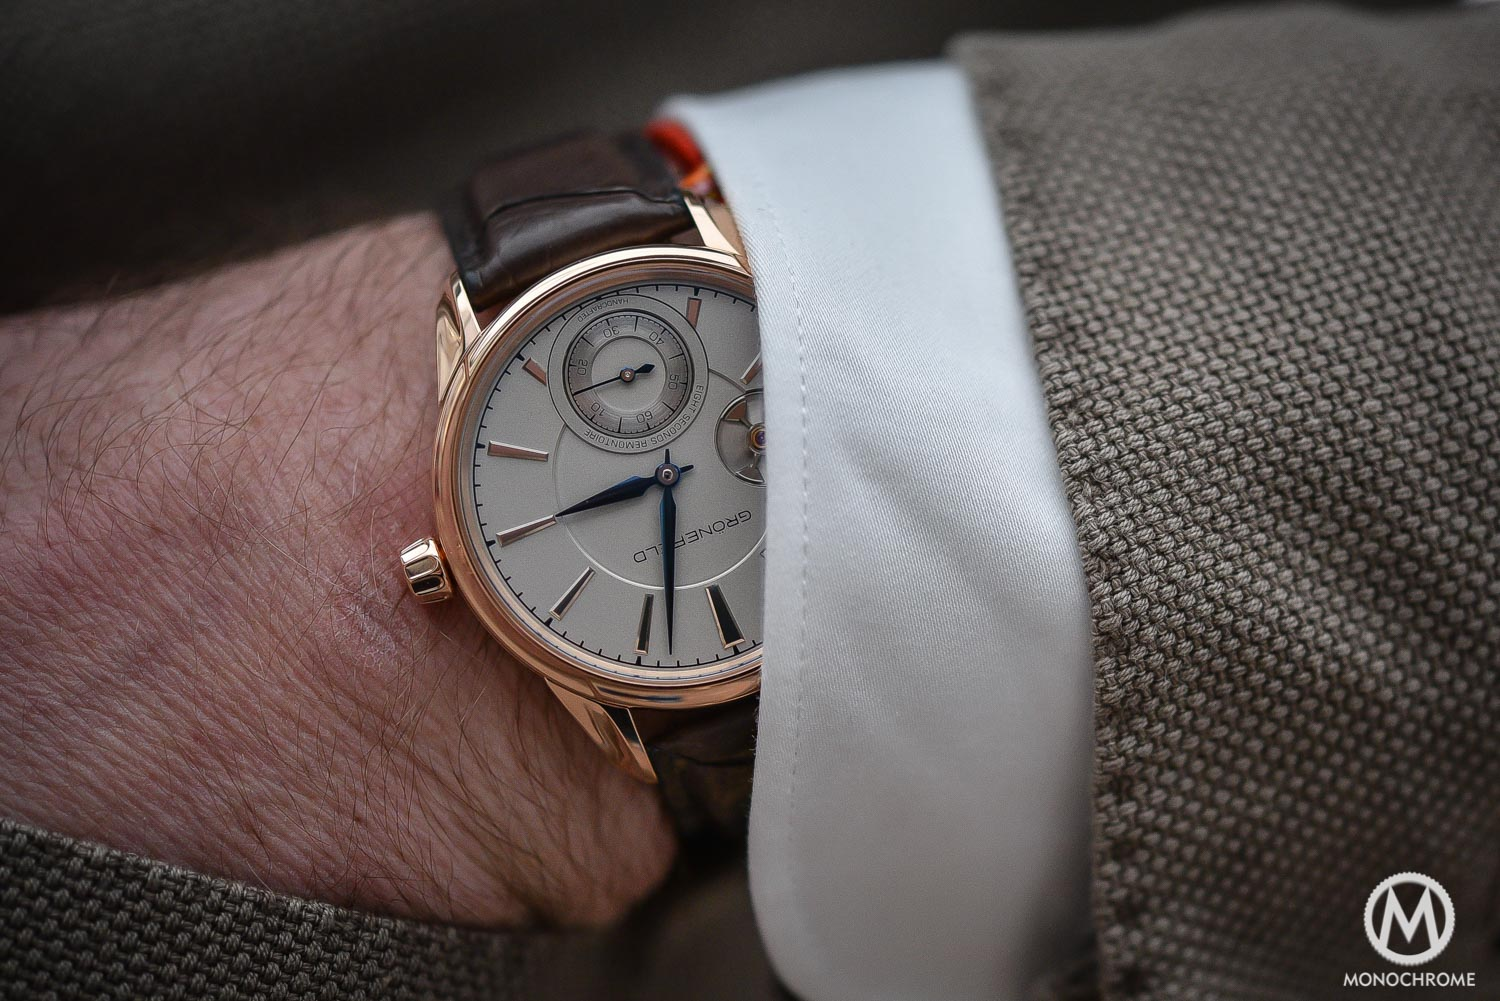 Top 5 Watches from Baselworld 2016 - Gronefeld 1941 Remontoire - Top 5 From Baselworld 2016 Frank - 1